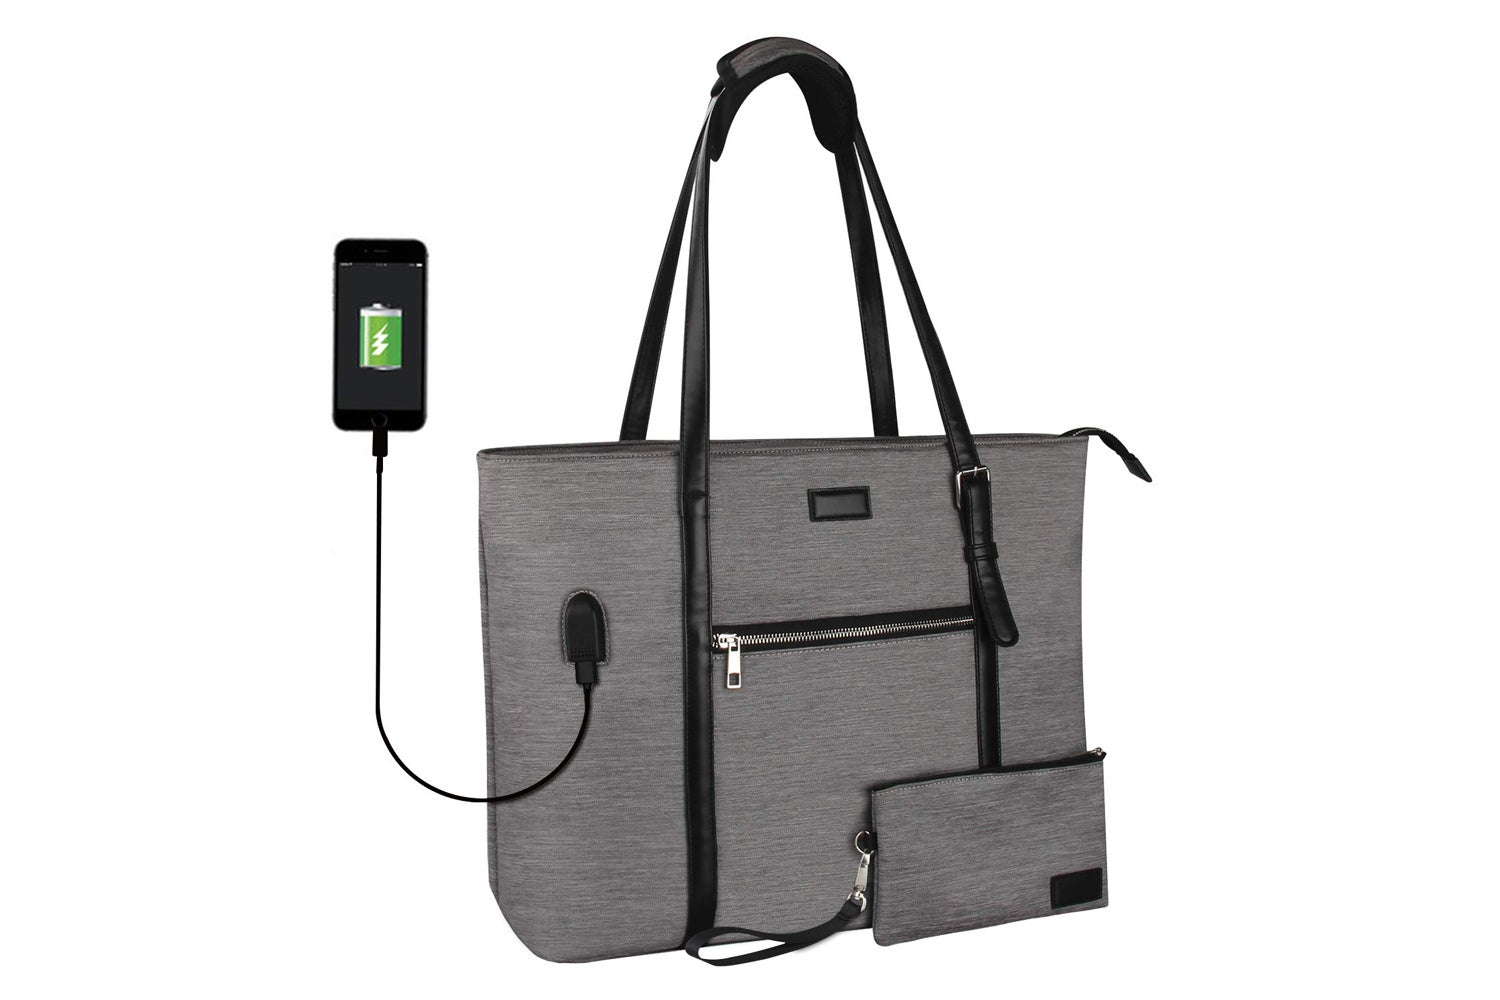 Large laptop tote Bag Fits 15 Inch Laptop, Multiple Compartments and Water Resistant with USB Port